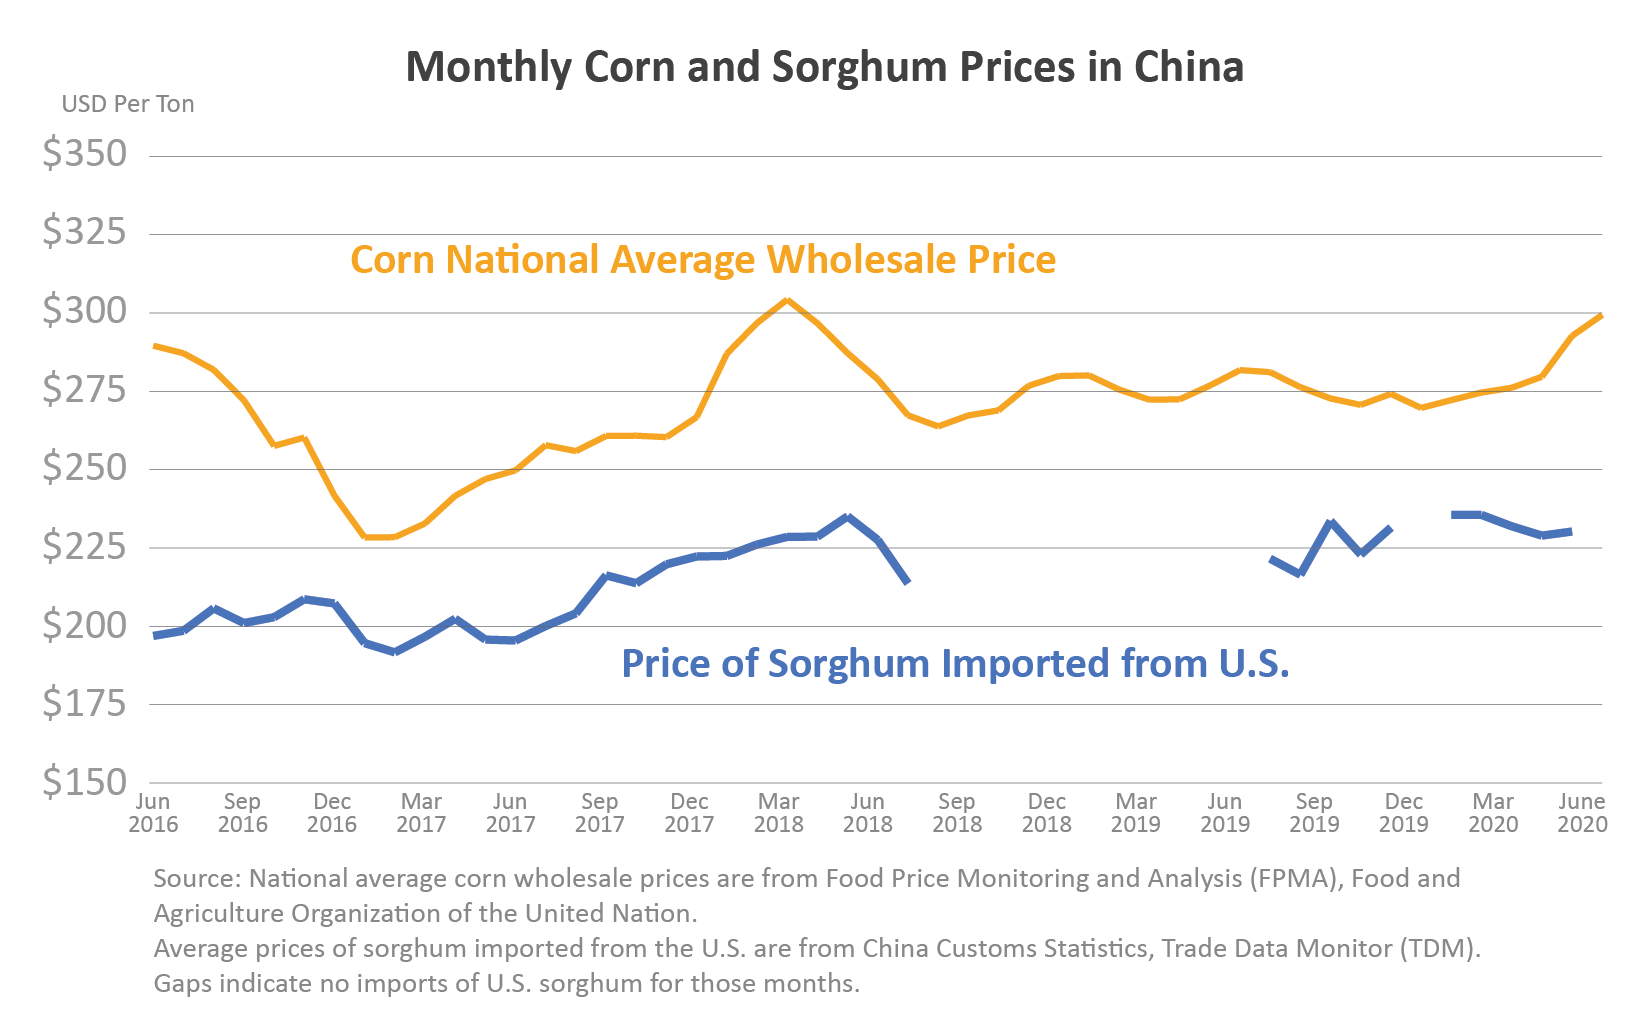 Line graph comparing the prices of U.S. corn and U.S. sorghum imports into China from June 2016 to June 2020